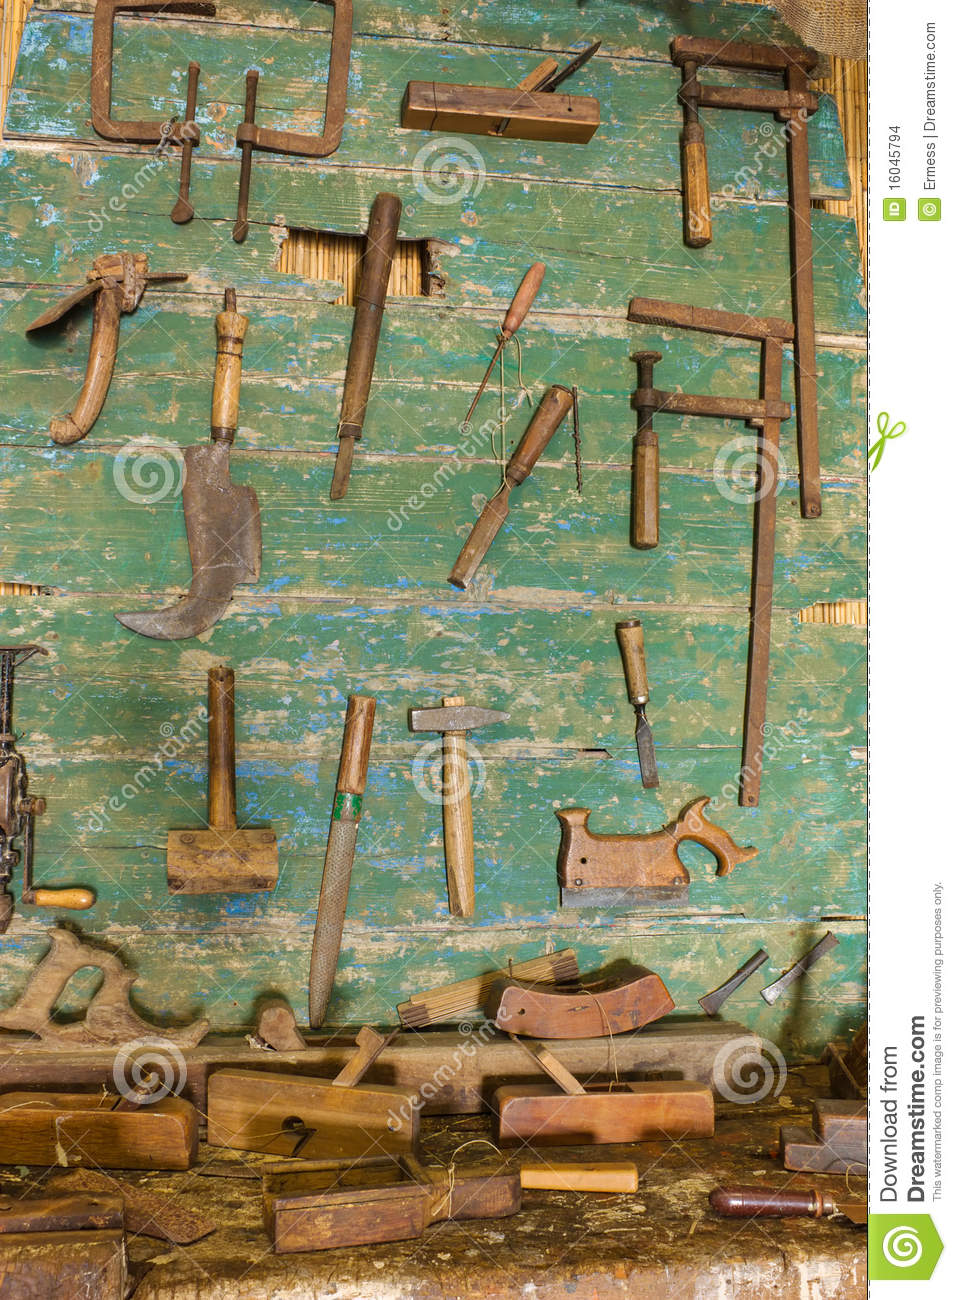 Old Carpenter S Workshop Stock Photo Image Of Dirty 16045794